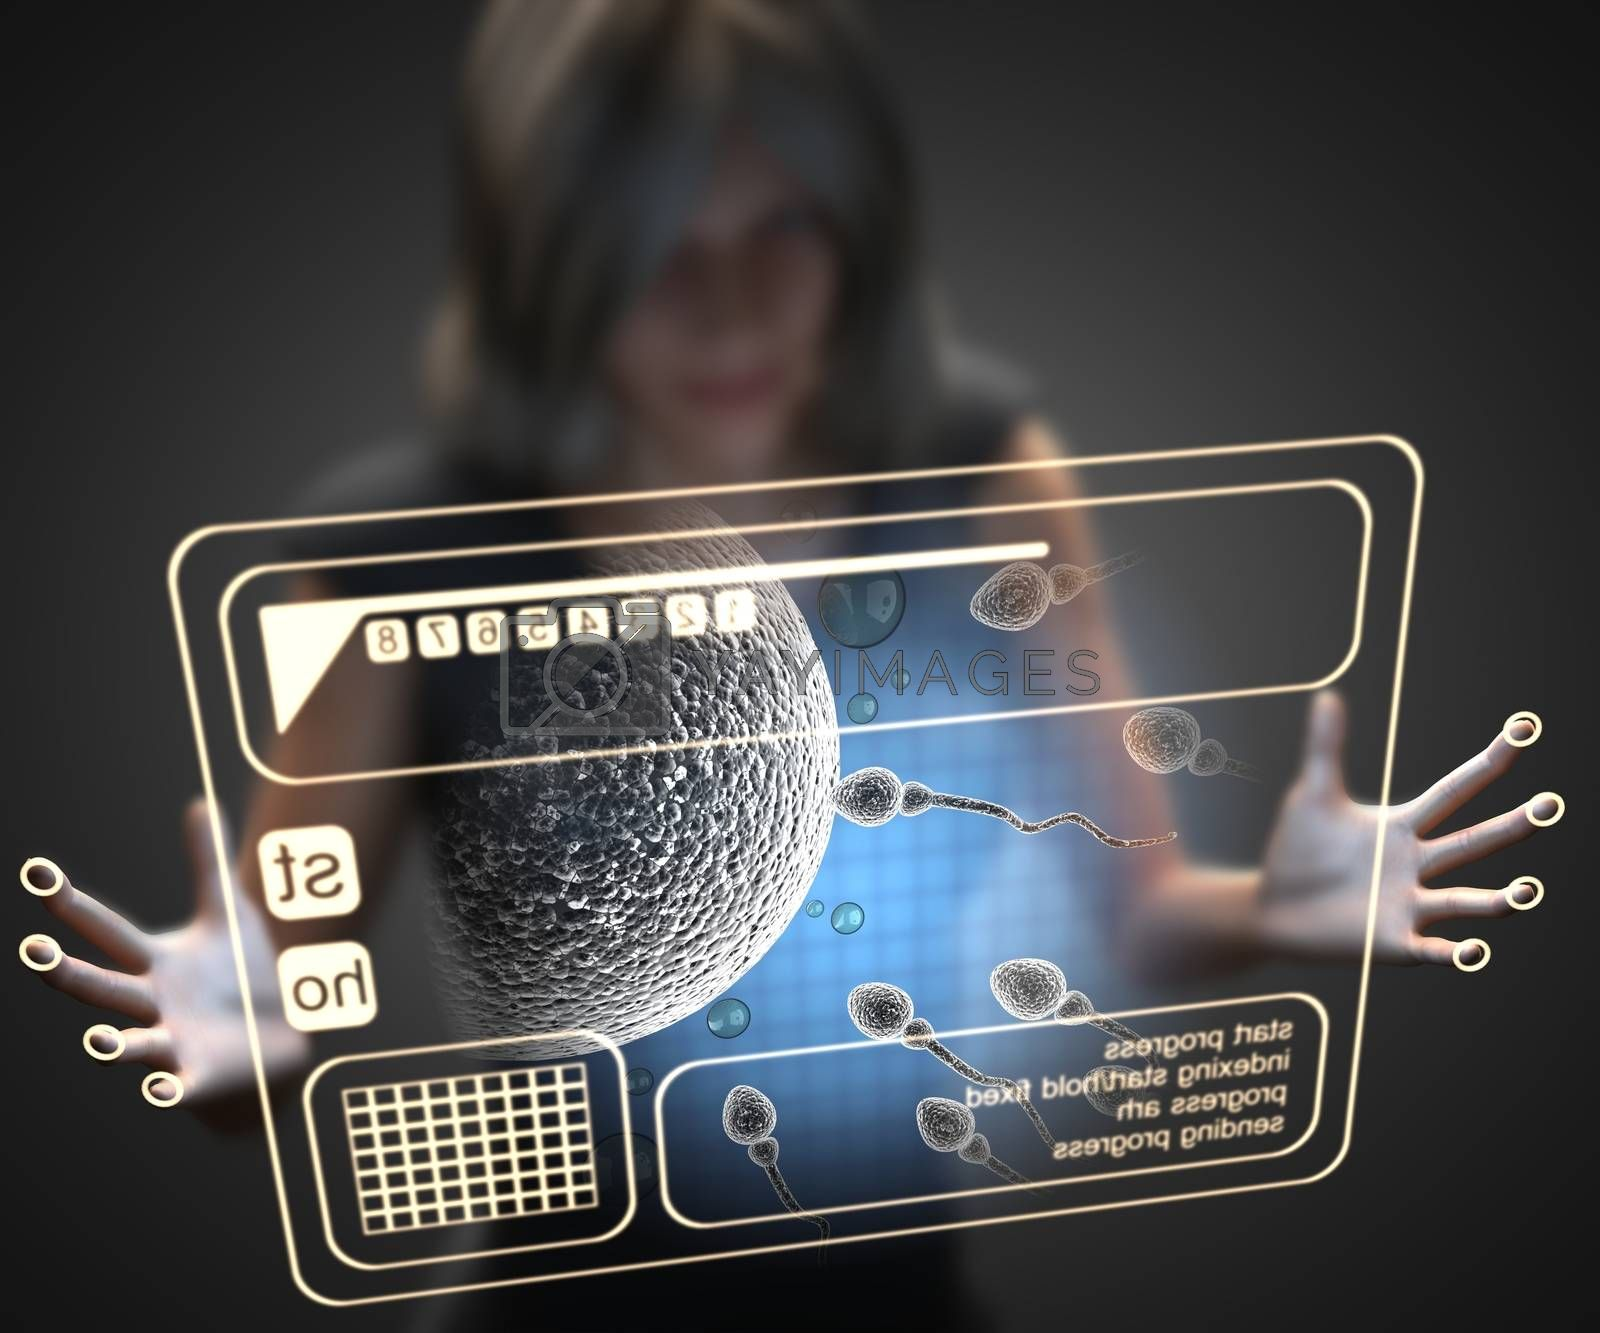 Royalty free image of woman and hologram with reproduction by videodoctor